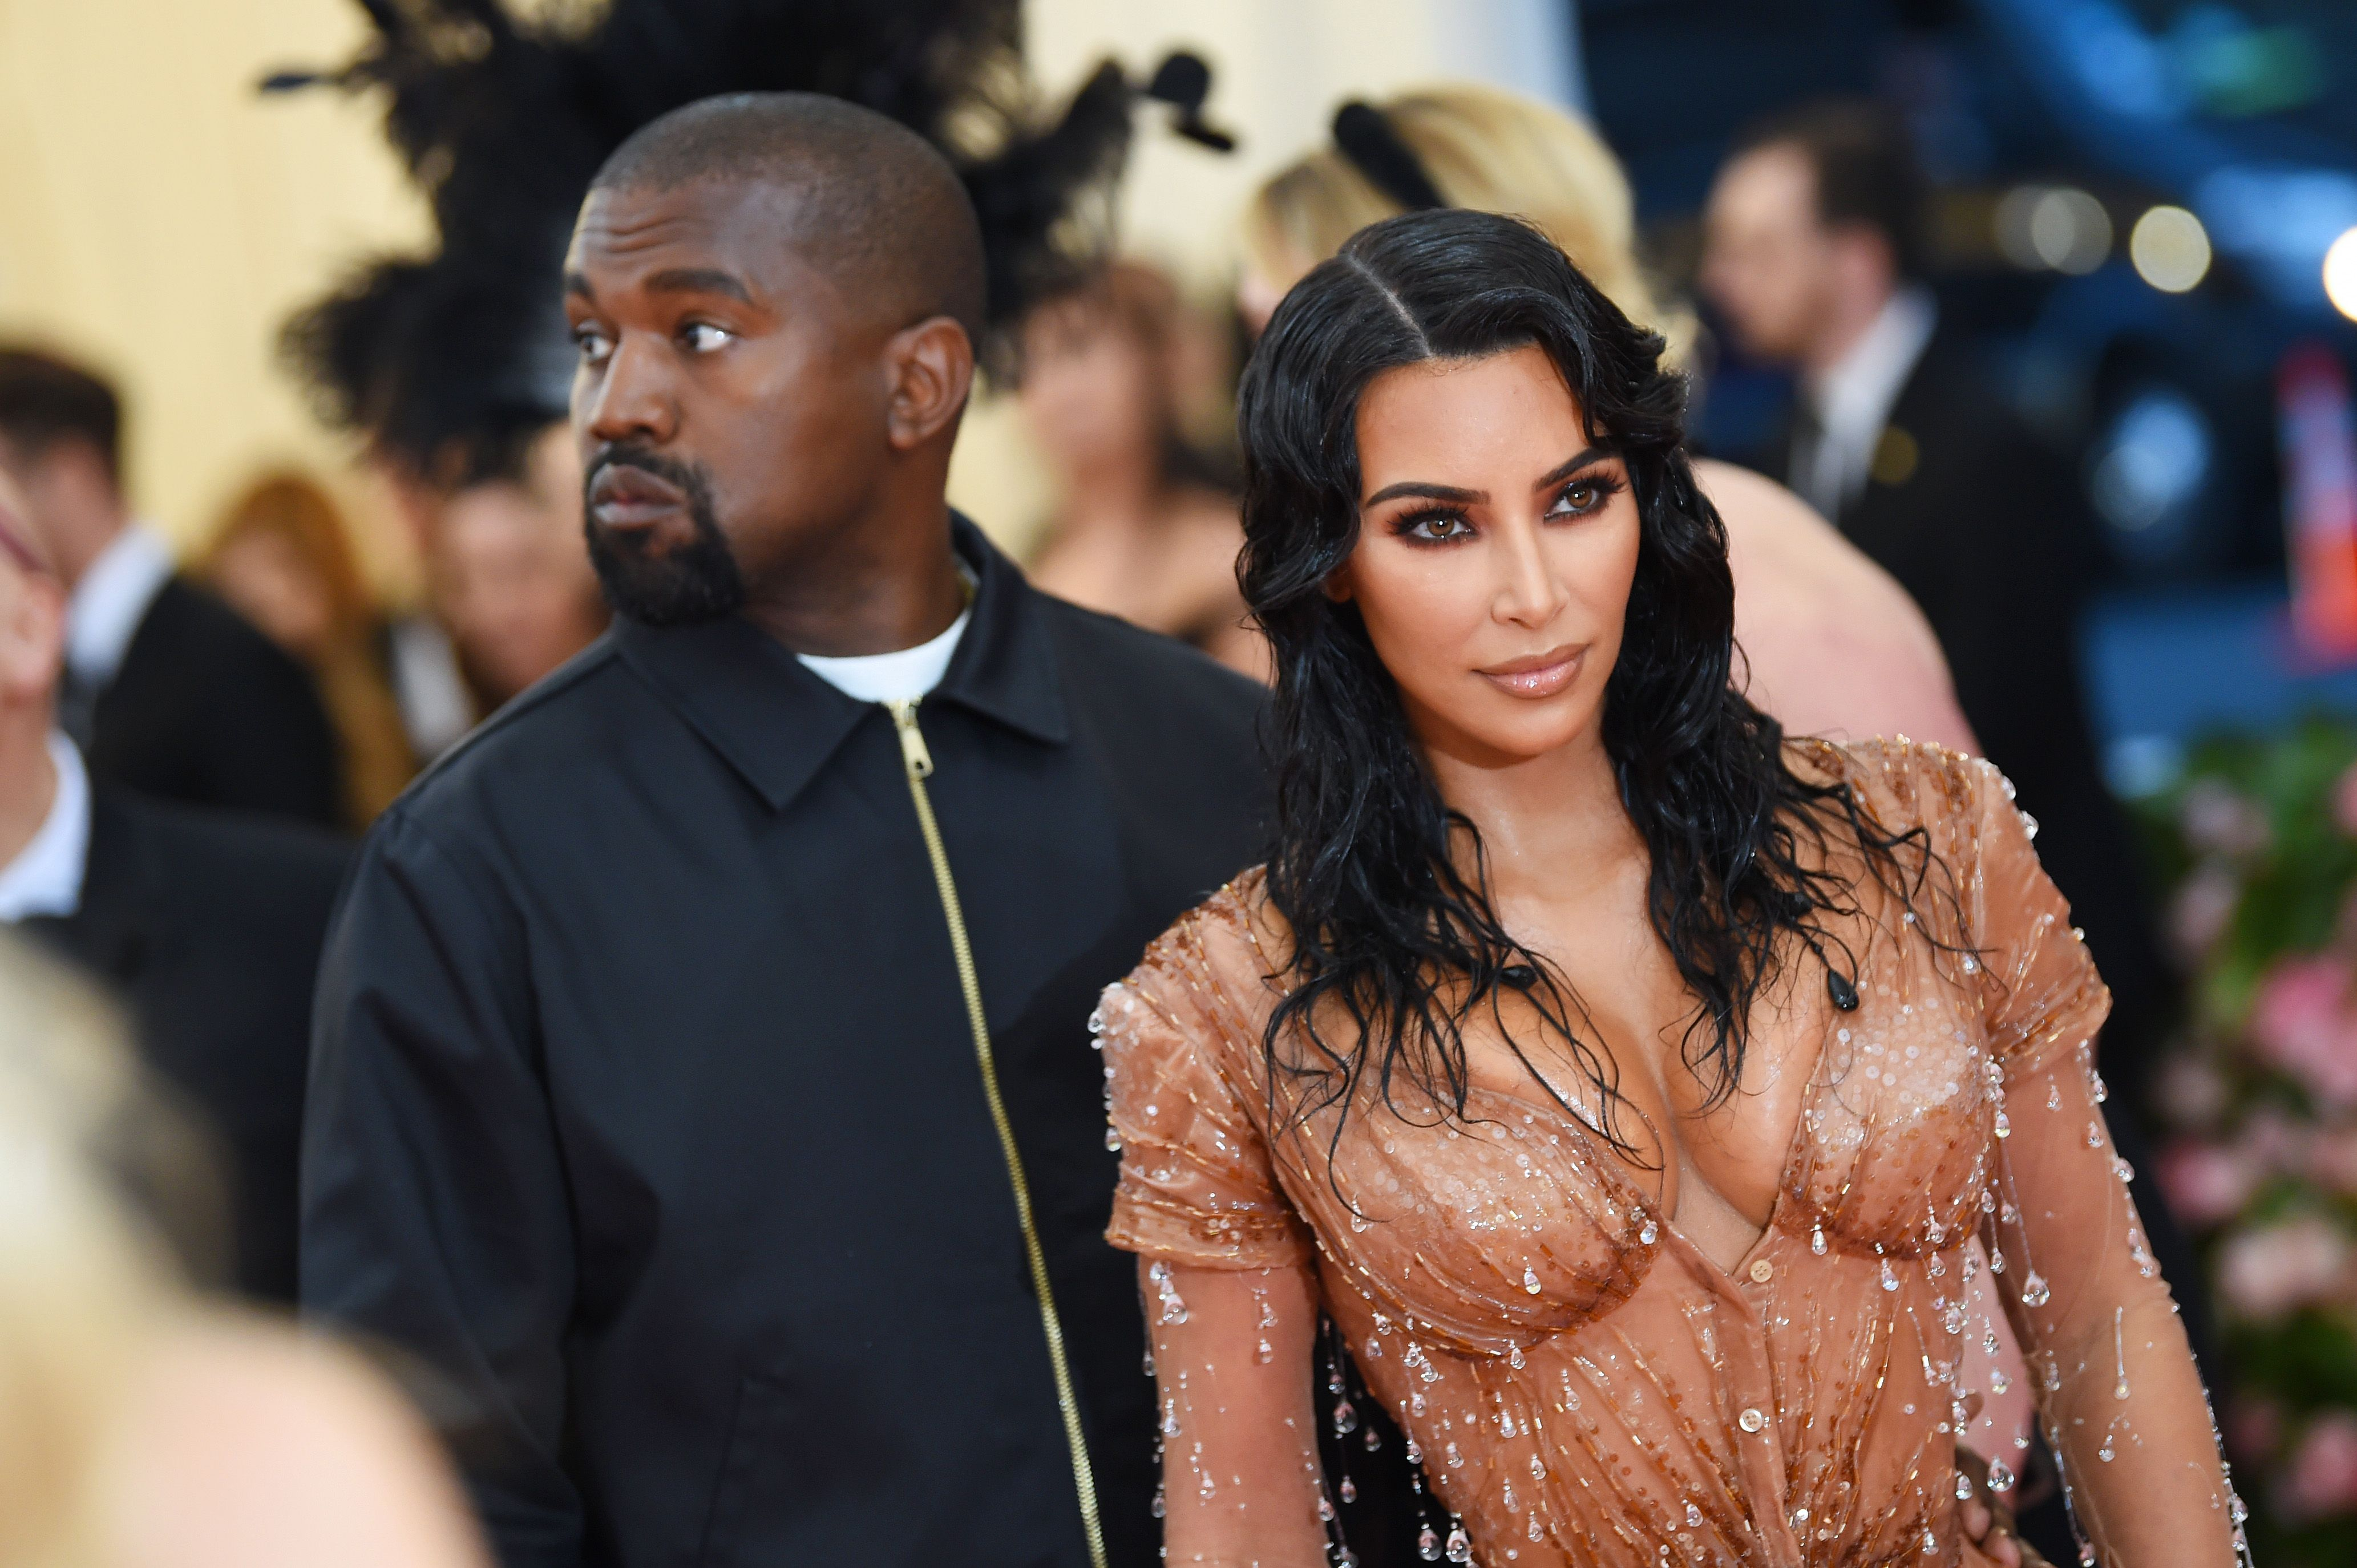 Kim Kardashian Wasn't Having Kanye West's Gross Remark Her Met Gala Look Was 'Too Sexy' for Her to Wear